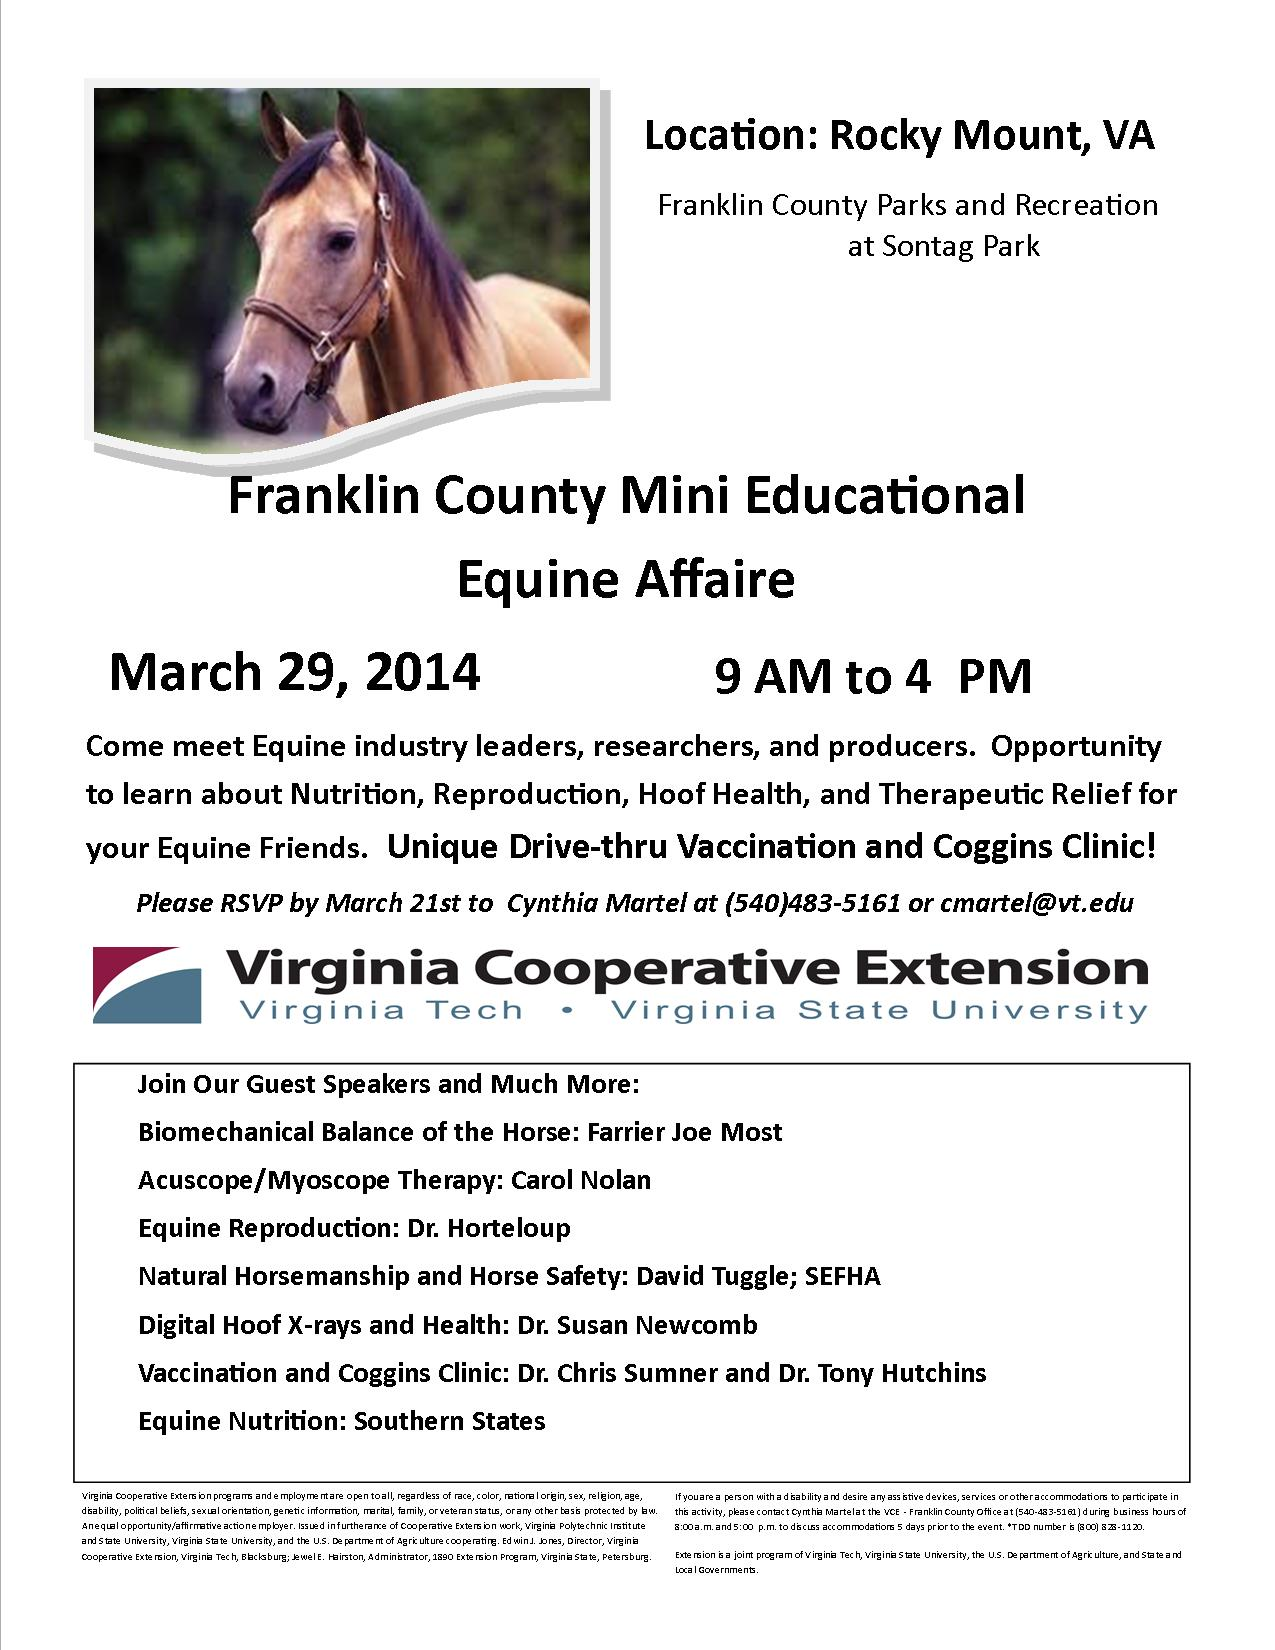 2014 Franklin County Mini Educational Equine Affaire